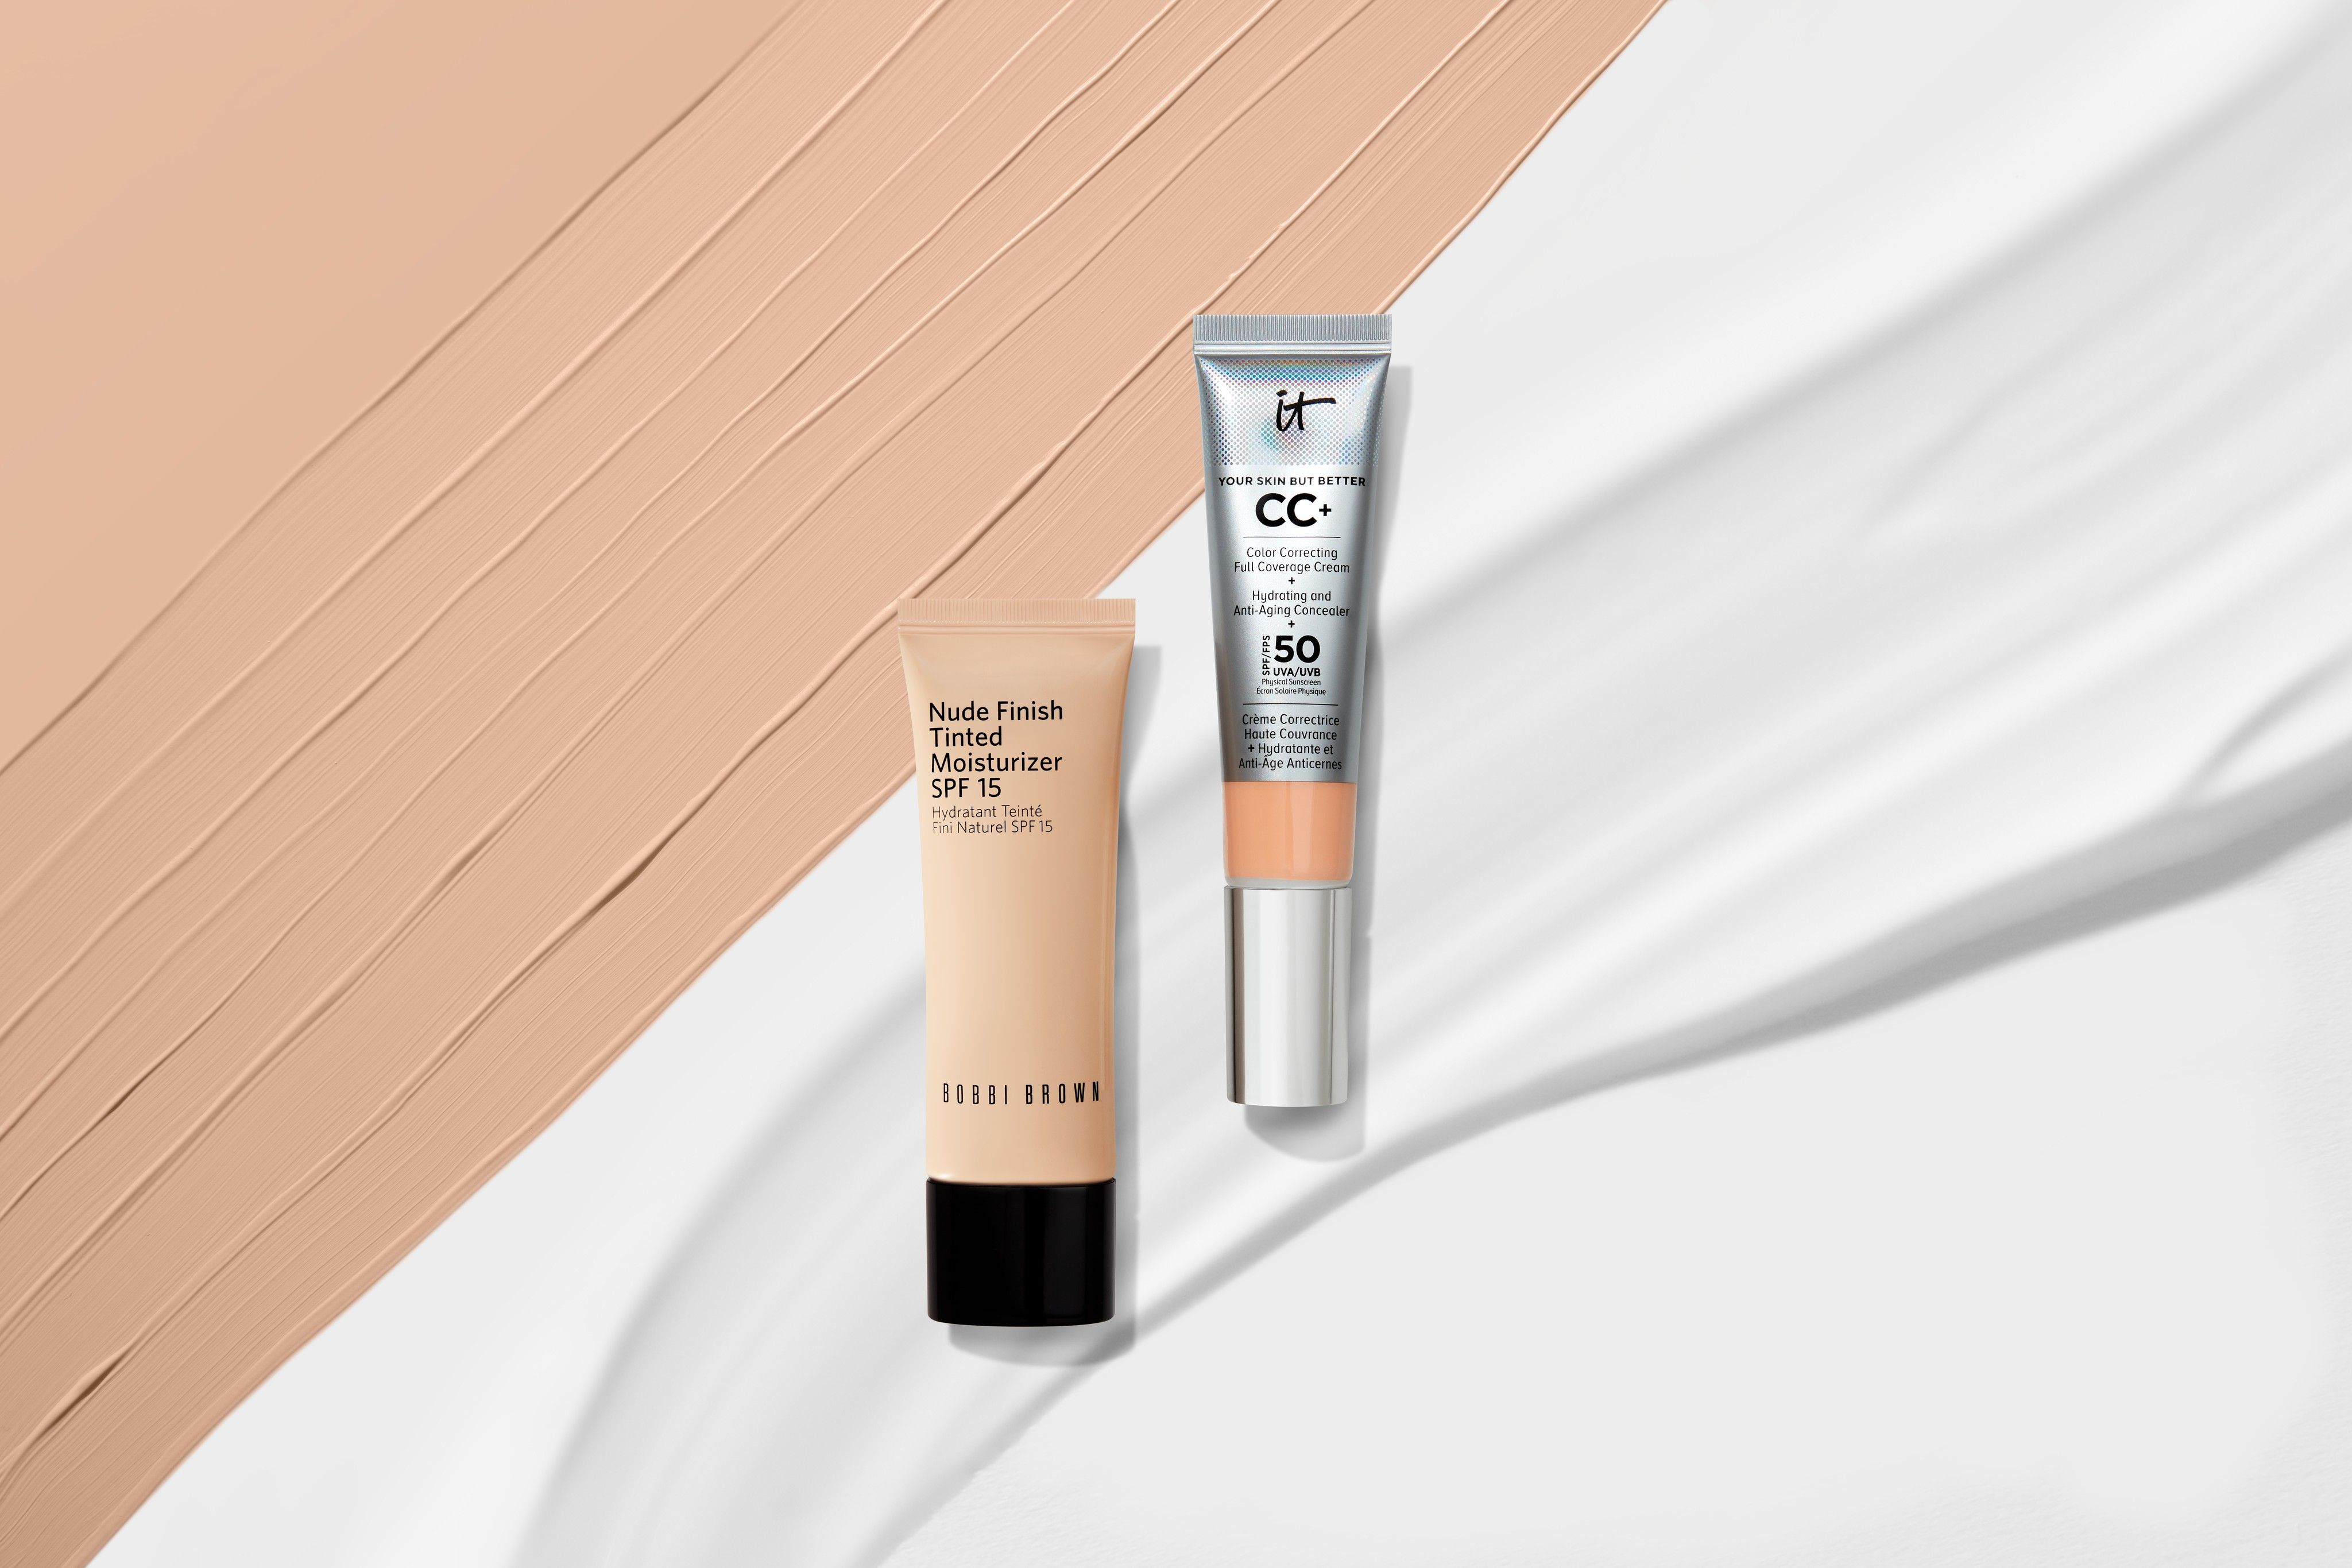 Makeup-product-multifunctional-textures-tinted-moisturizer-cc-cream-bobbi-brown-it-cosmetics-unlimited-Web-Rendition-1